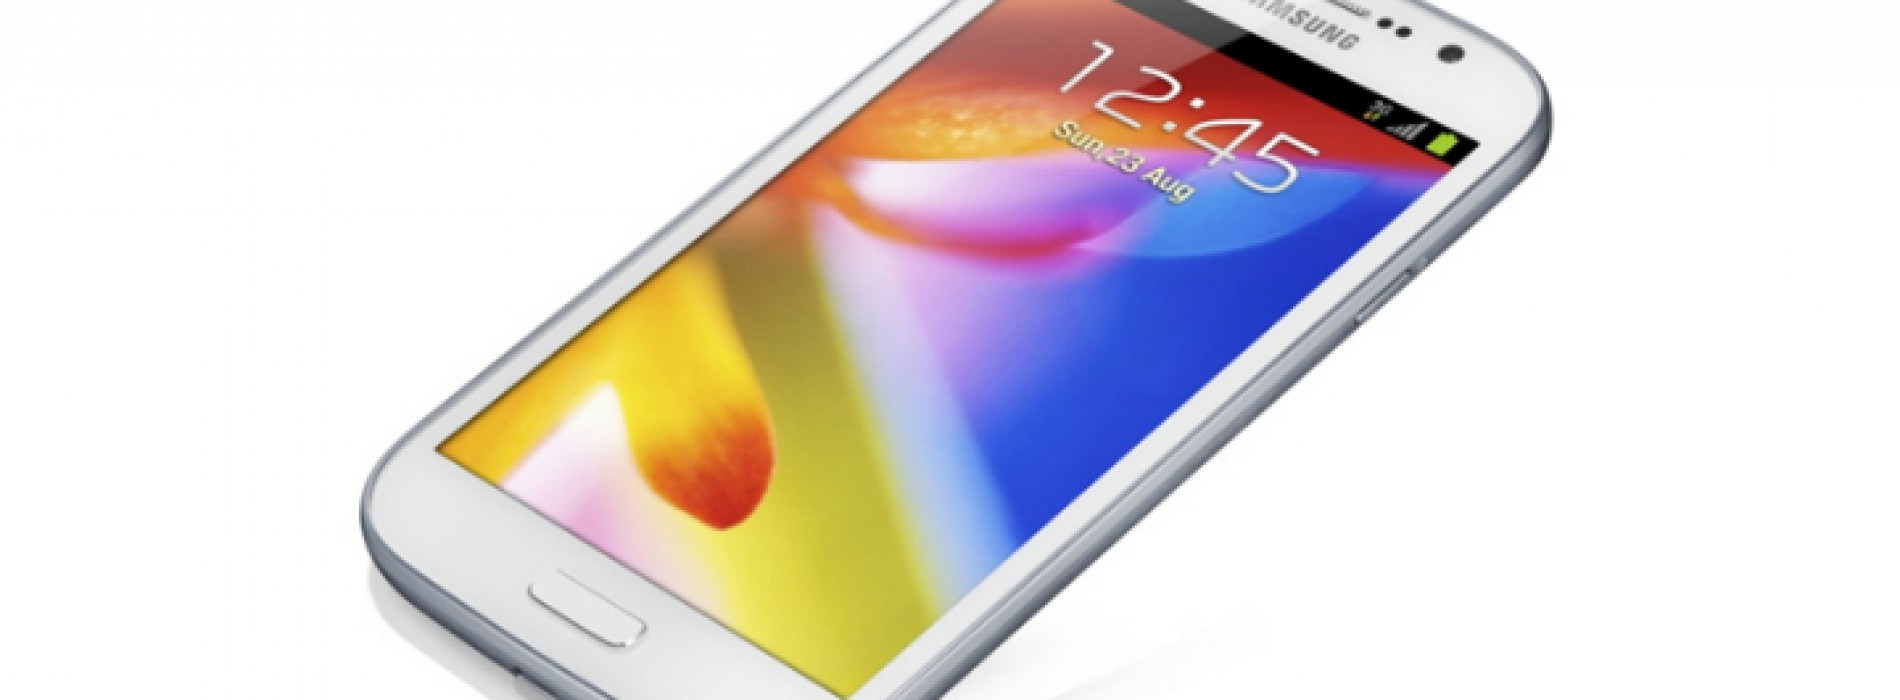 Samsung intros 5-inch Galaxy Grand for international markets